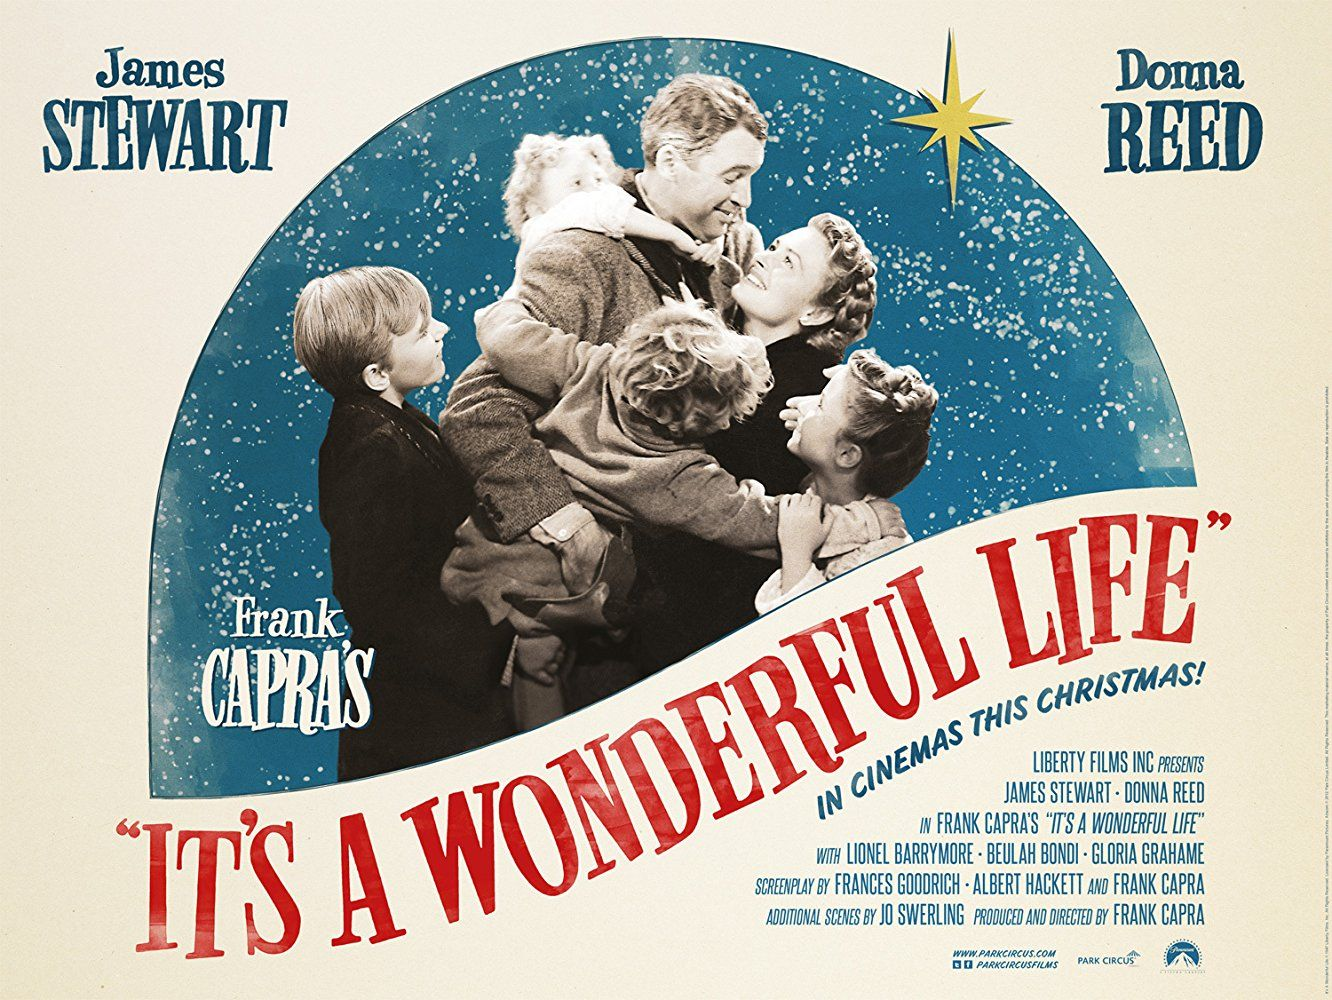 Holiday Movie Posters We Love Wonderful life movie, Its